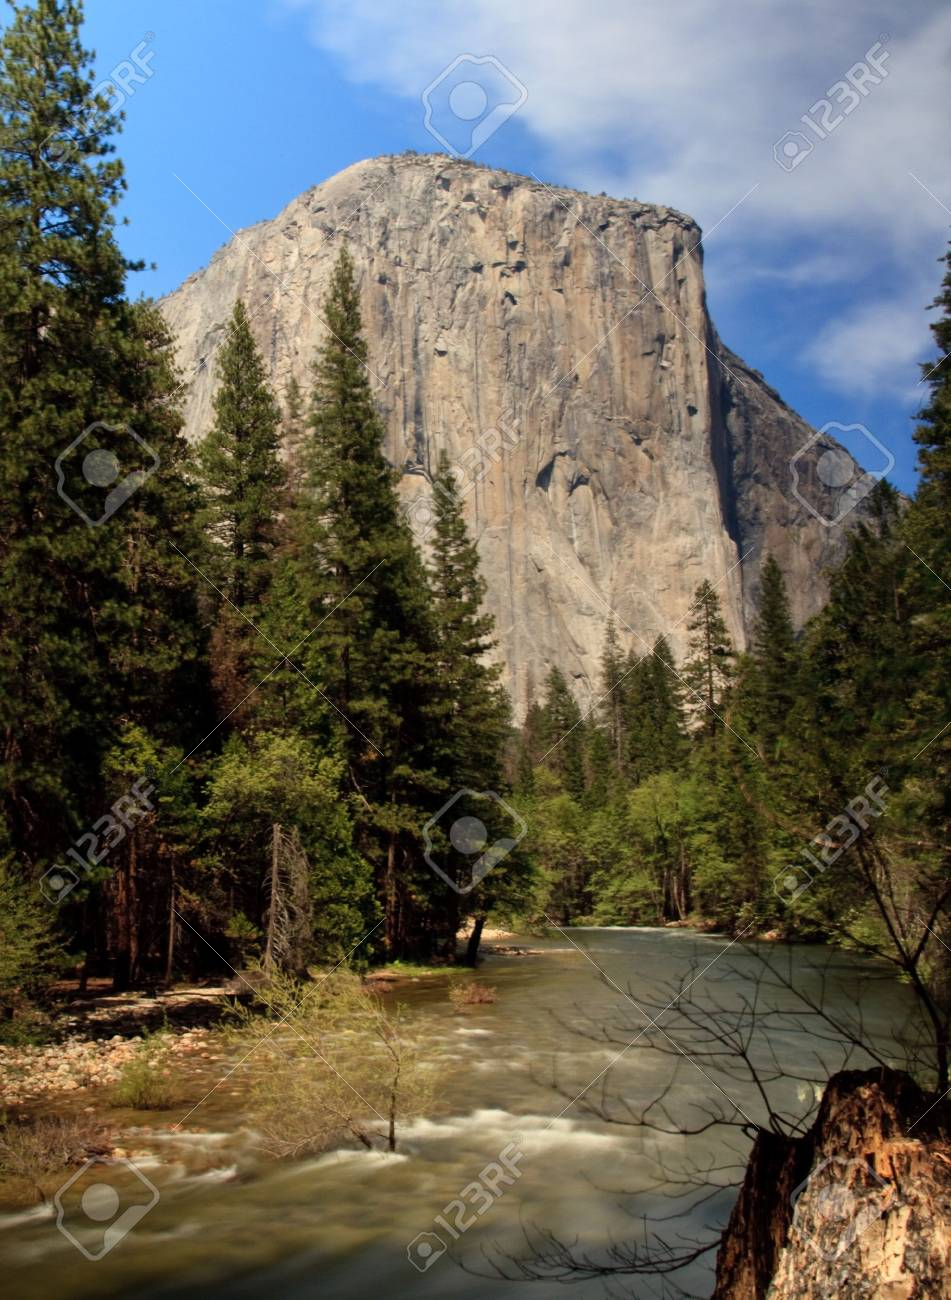 Yosemite view with slow shutter speed providing smoothed calm waters of rushing river Stock Photo - 4924217